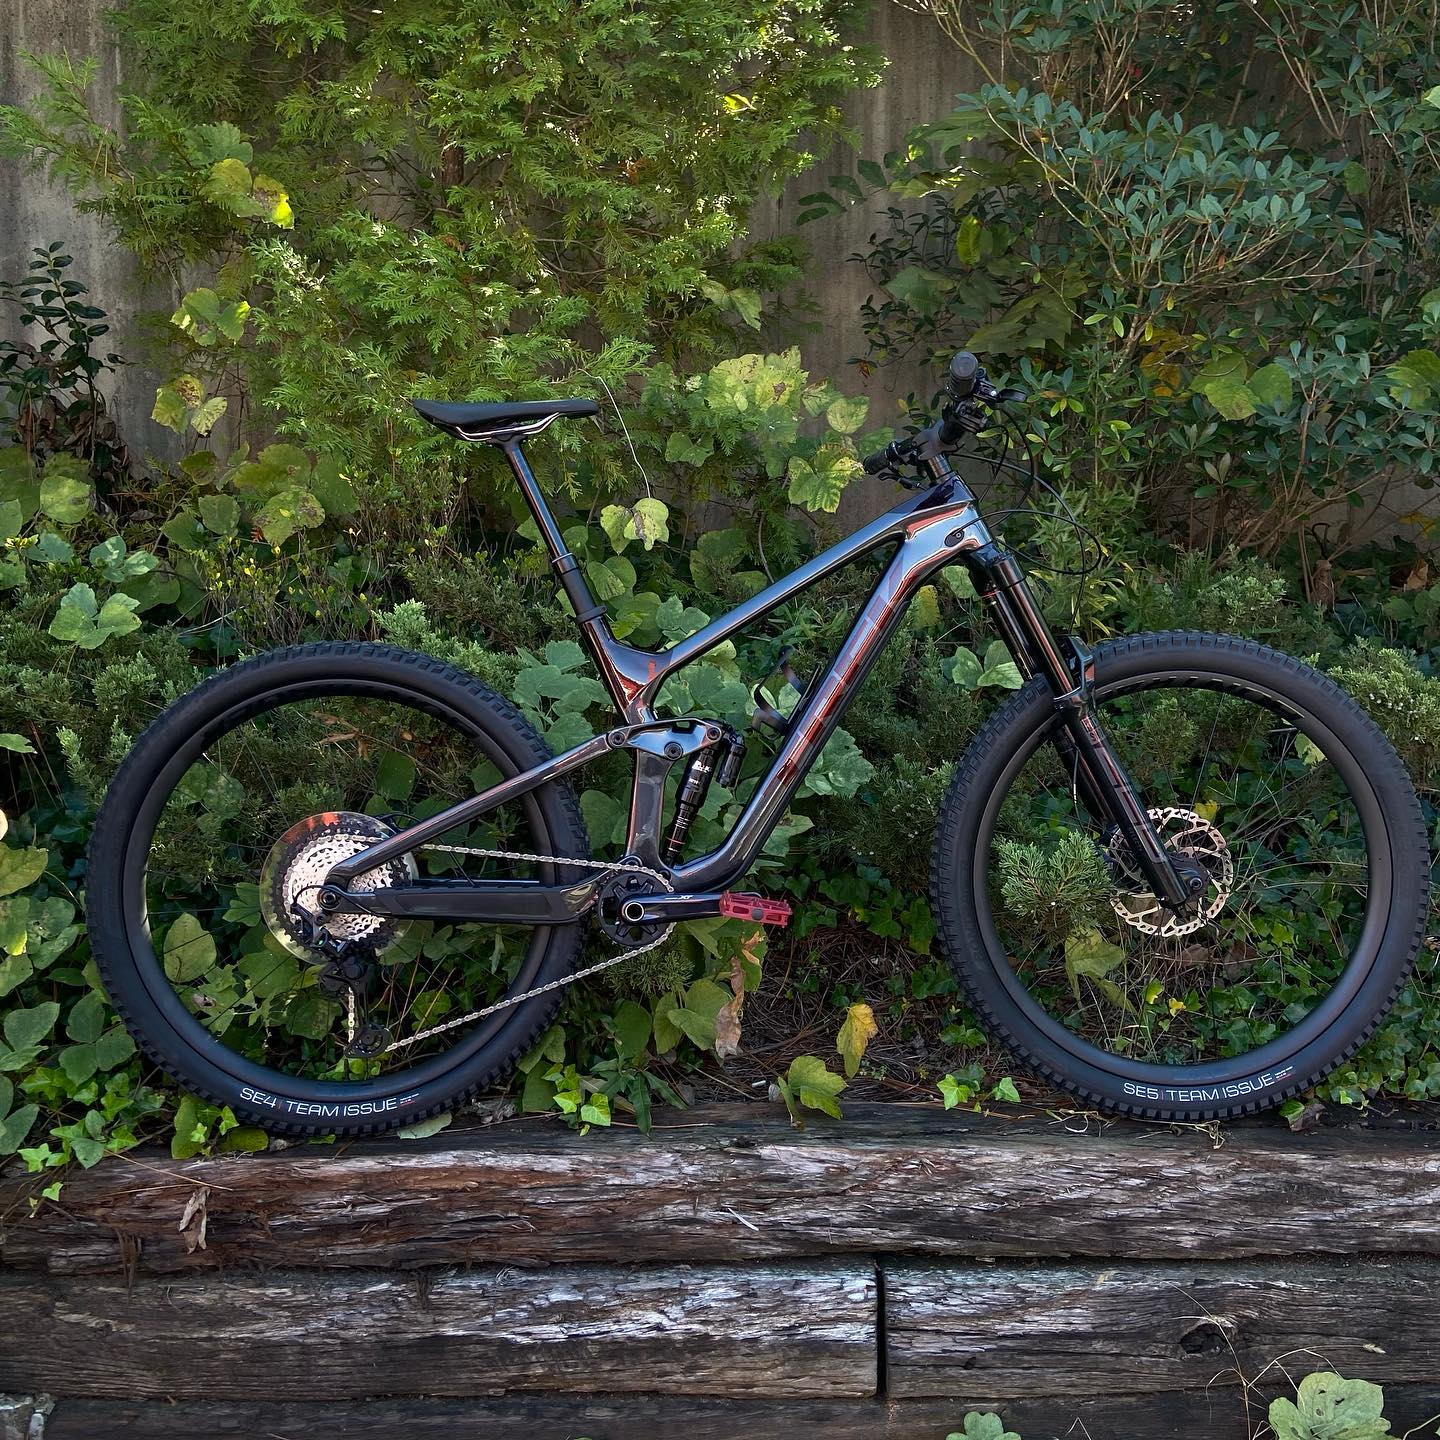 Slash 9.8 XT  A full OCLV Mountain Carbon frame with 160mm of travel and an all-new RockShox Super Deluxe Ultimate shock Shimano XT 12-speed drivetrain 4 piston brakes Line Elite Carbon Wheels Size large currently available in the shop. Come by for a test ride. . #slash #trekbikes #ridebikeshavefun . . . #mtbbike #mtblife #adventureseeker #fullsuspension #hubbikes